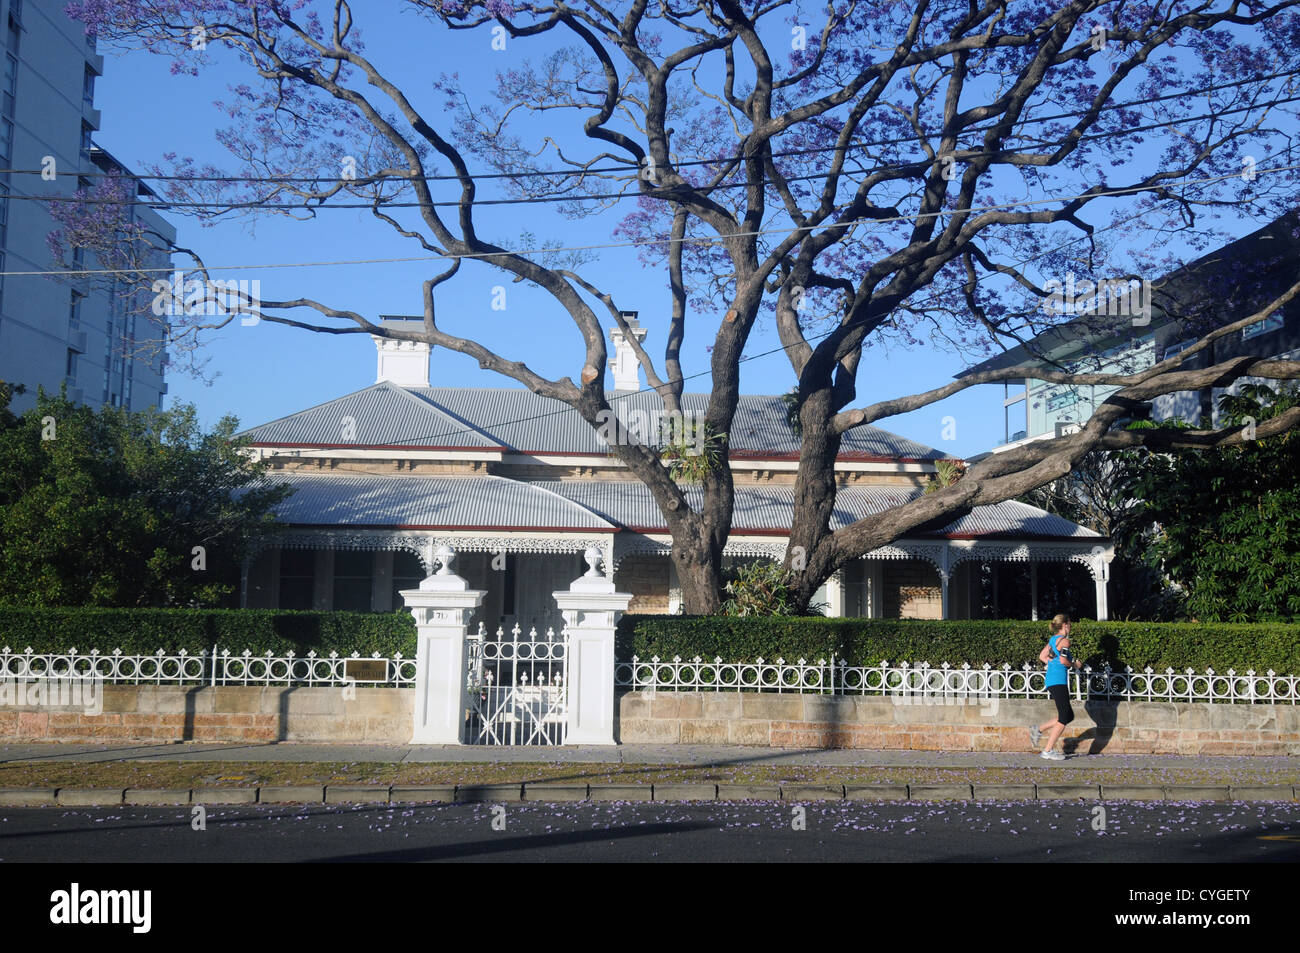 Classic architecture of The Moreton Club in Moray St, New Farm, Brisbane, Queensland, Australia. No MR or PR - Stock Image